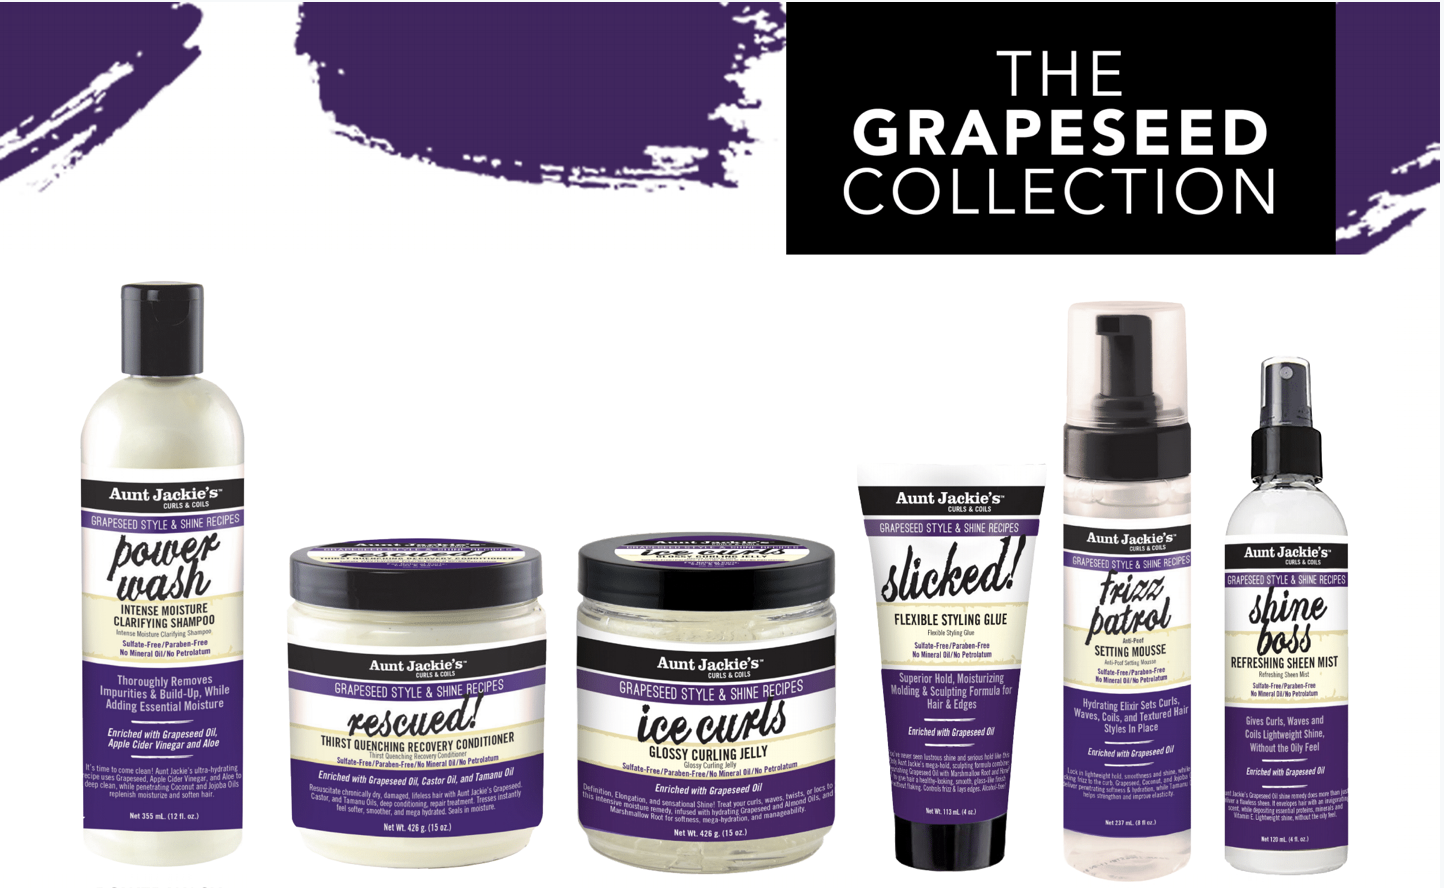 Aunt Jackie's Grapeseed Collection